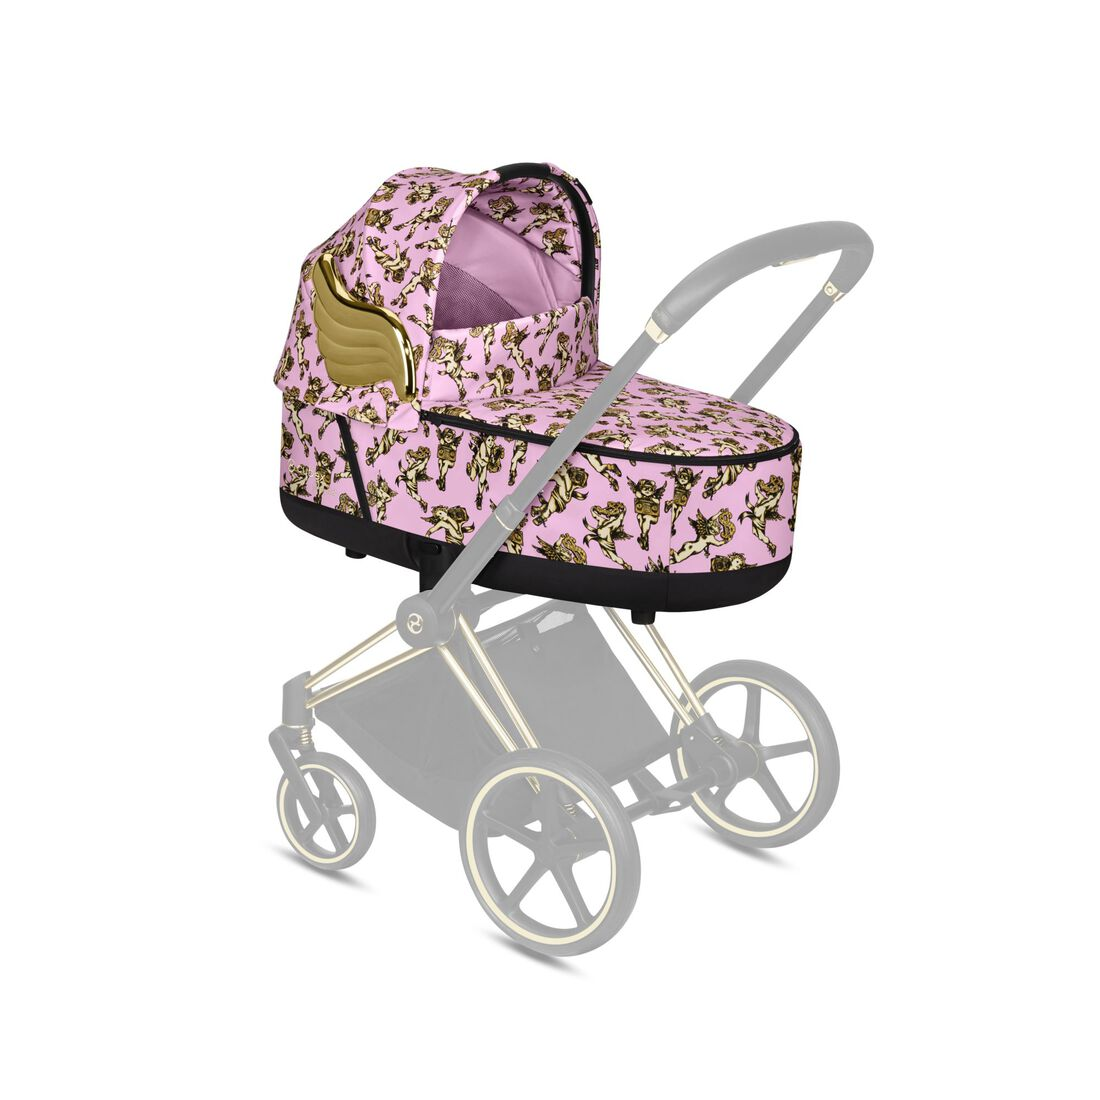 CYBEX Priam Lux Carry Cot - Cherubs Pink in Cherubs Pink large Bild 4